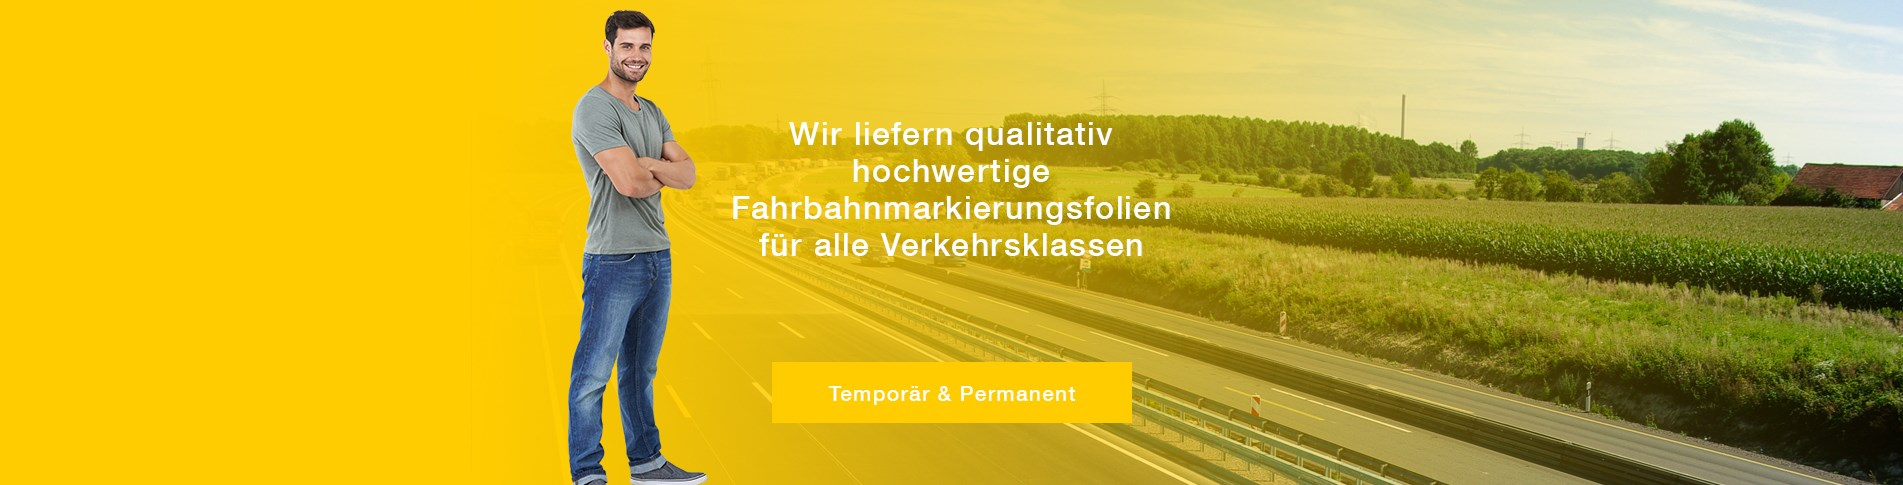 Temporär & Permanent